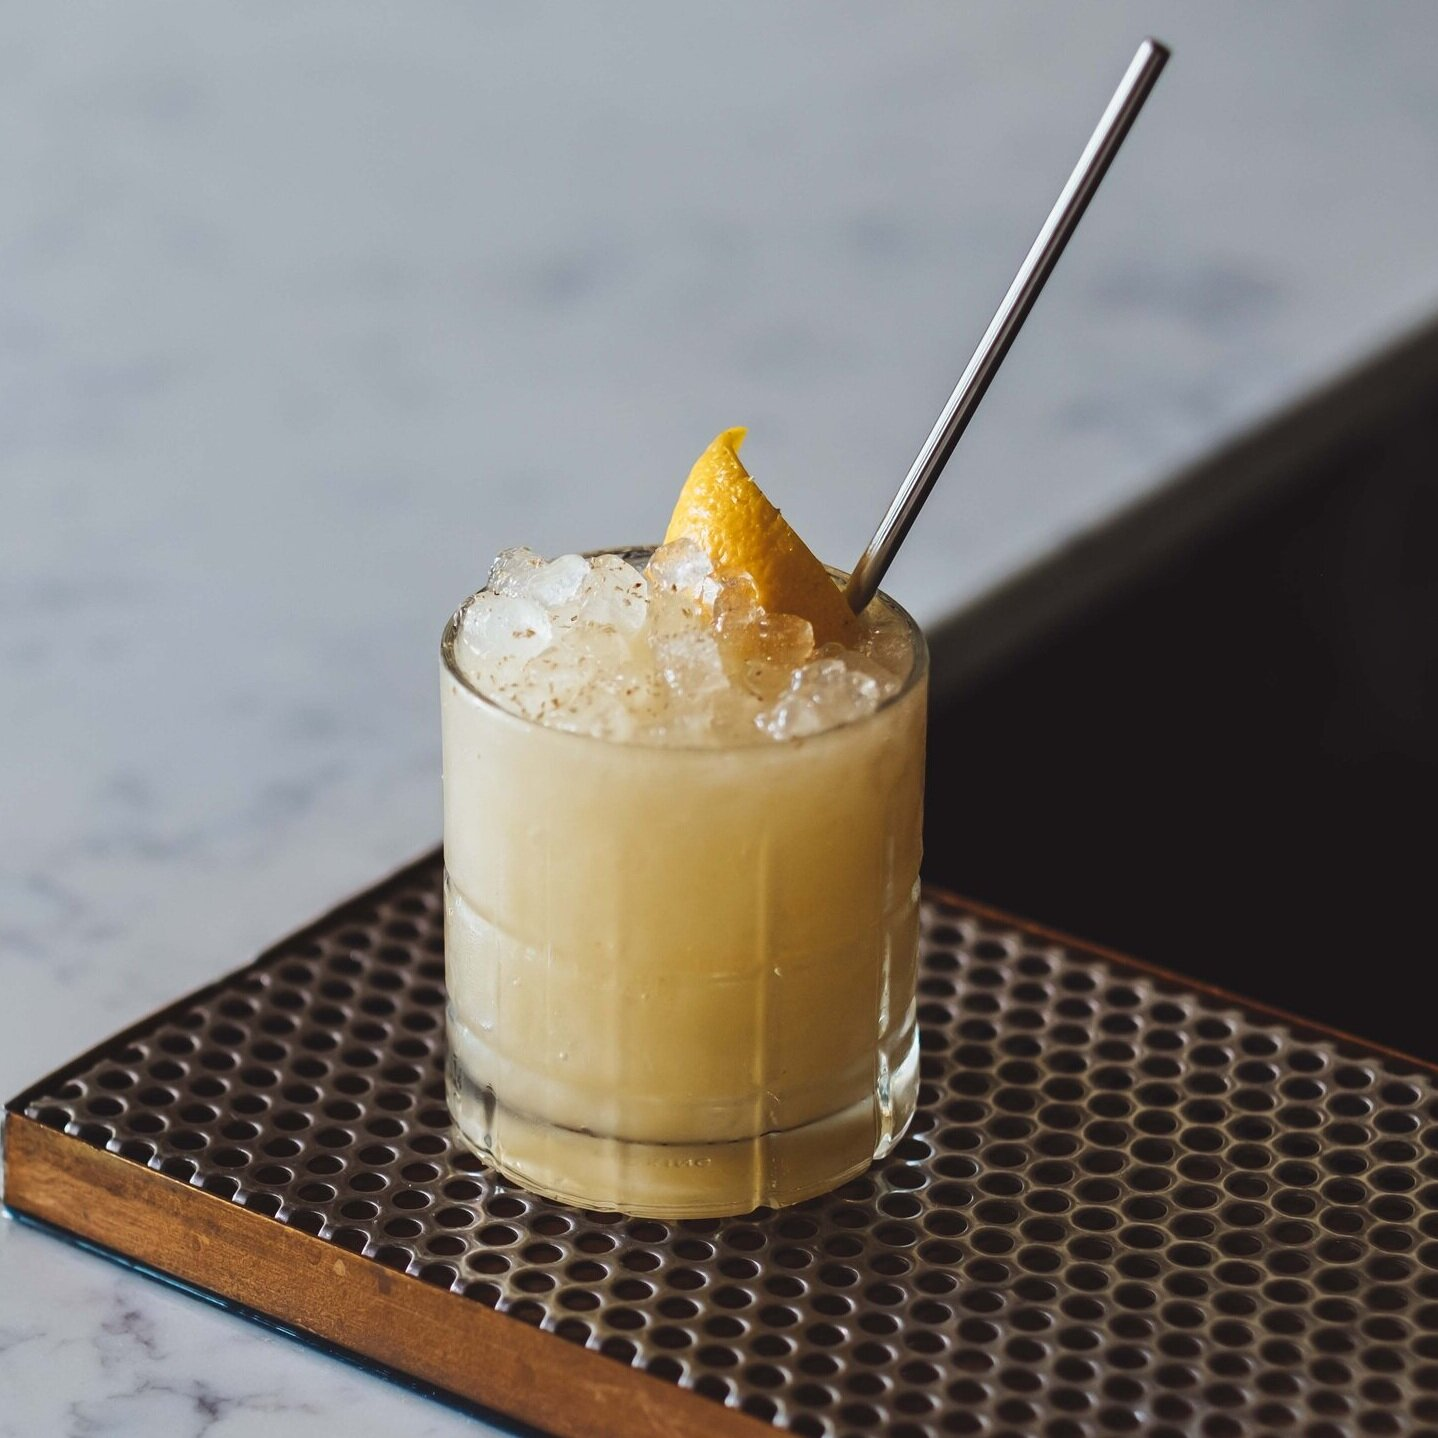 Featured Cocktail: Just Another Corpse Reviver - with Cognac VS, Pere Magloire Calvados, Dolin Blanc, Macadamia nut milk, orgeat and cardamom bitters